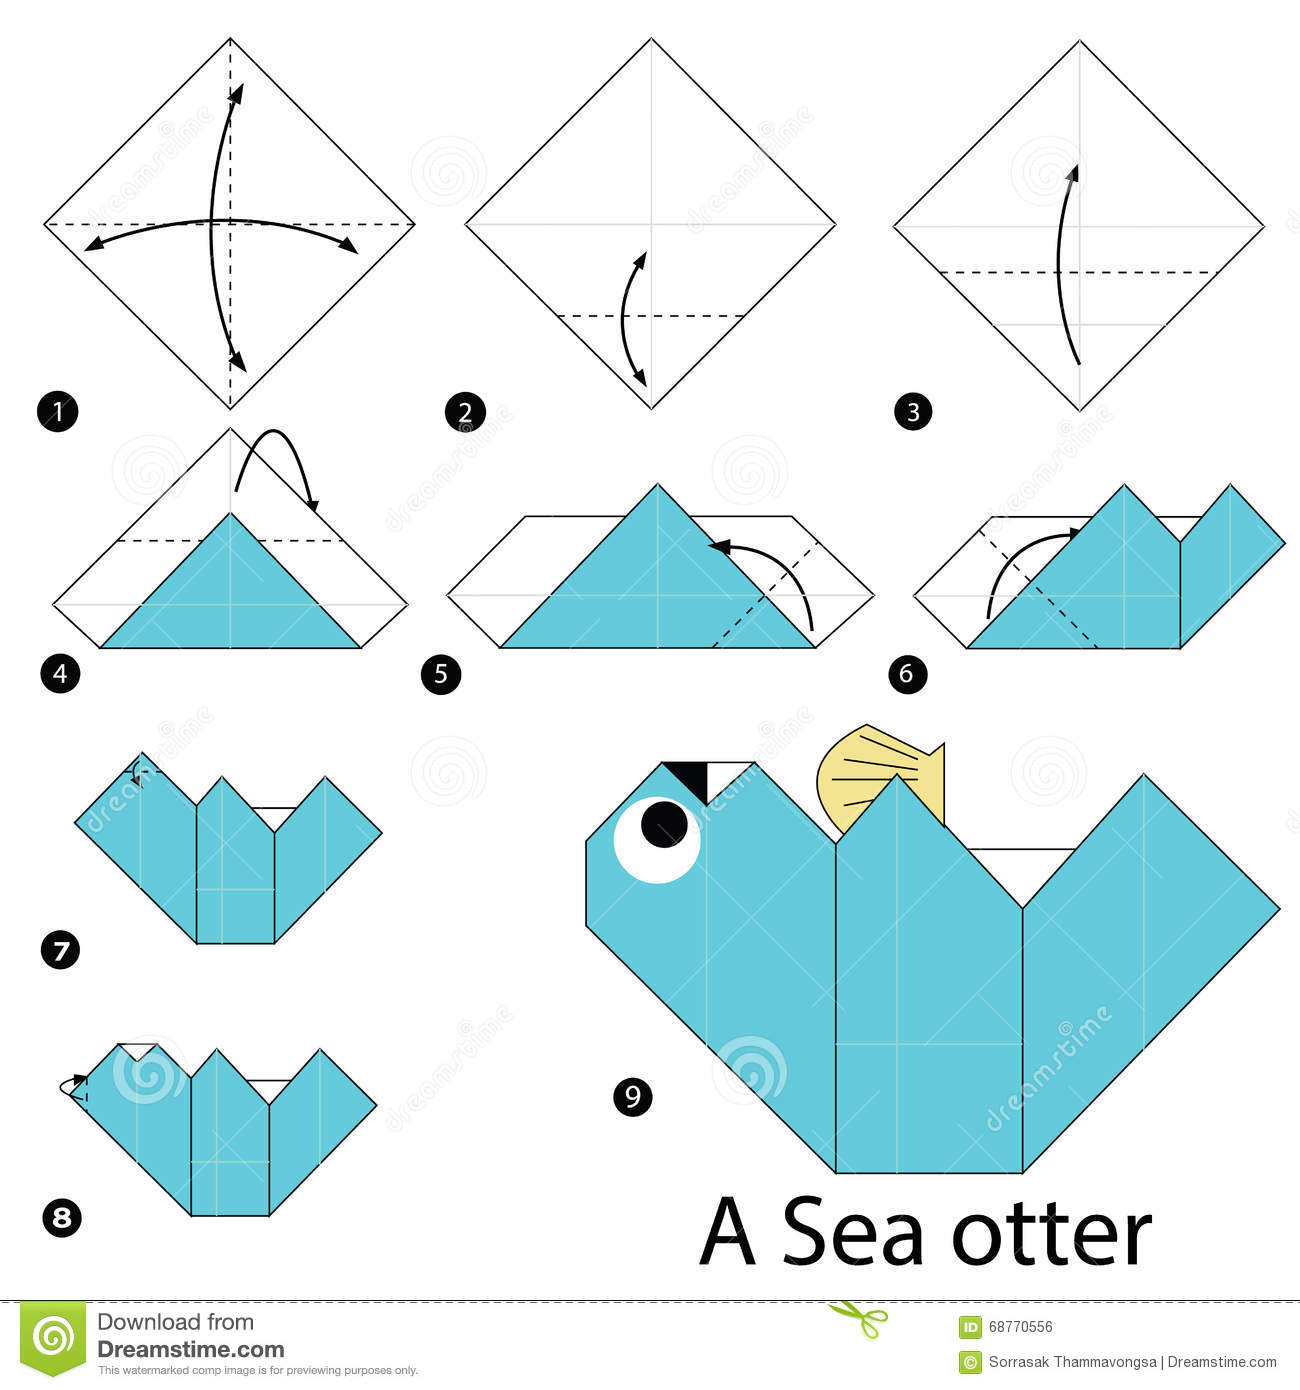 87 Origami Zebra Instructions Mouse Li Aka Ville To Fold From The Paper Diagram Of Themouse Step By How Make A Sea Otter Stock